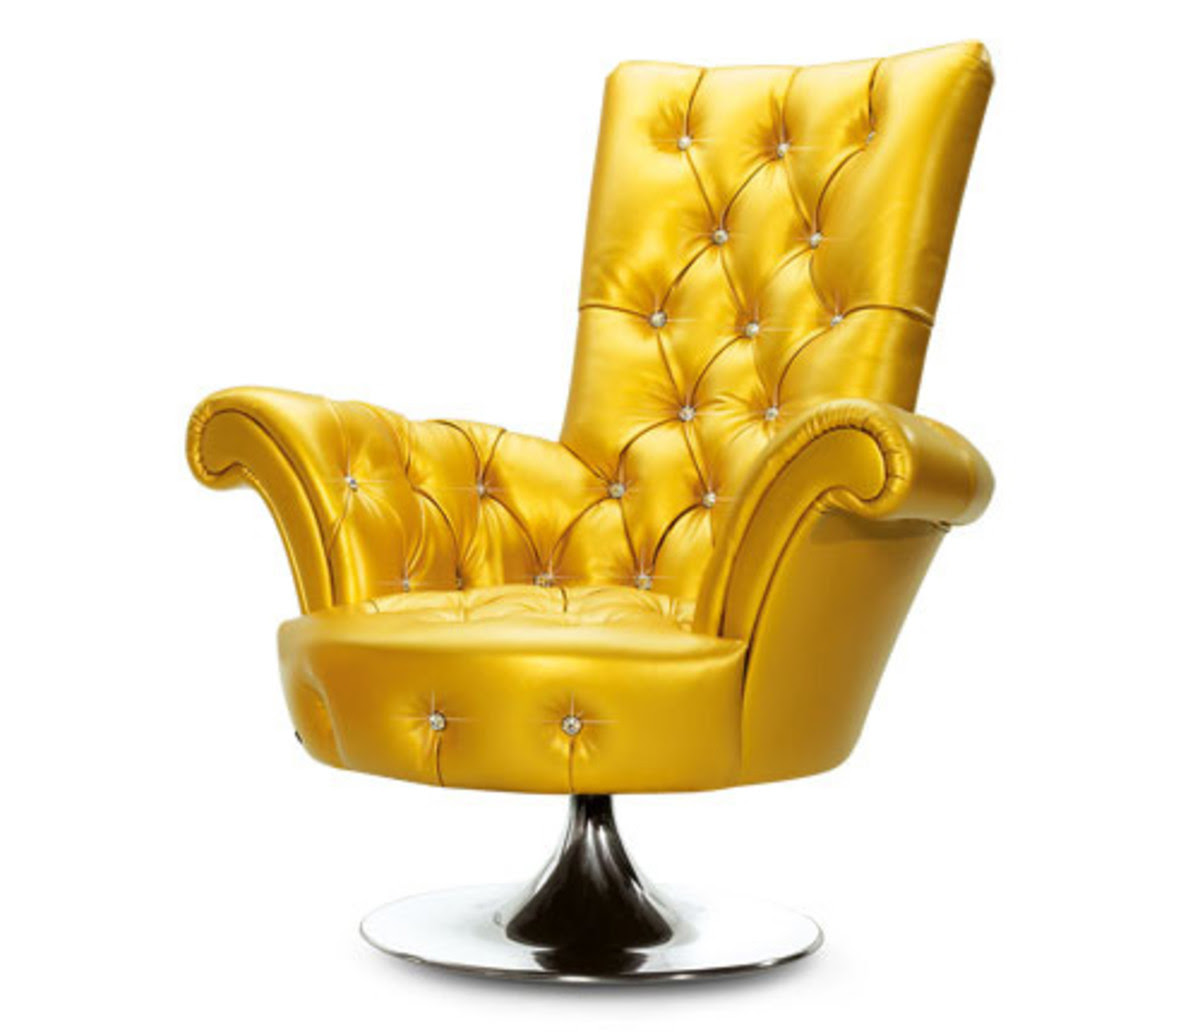 10 Great Examples of Bold Yellow Furniture